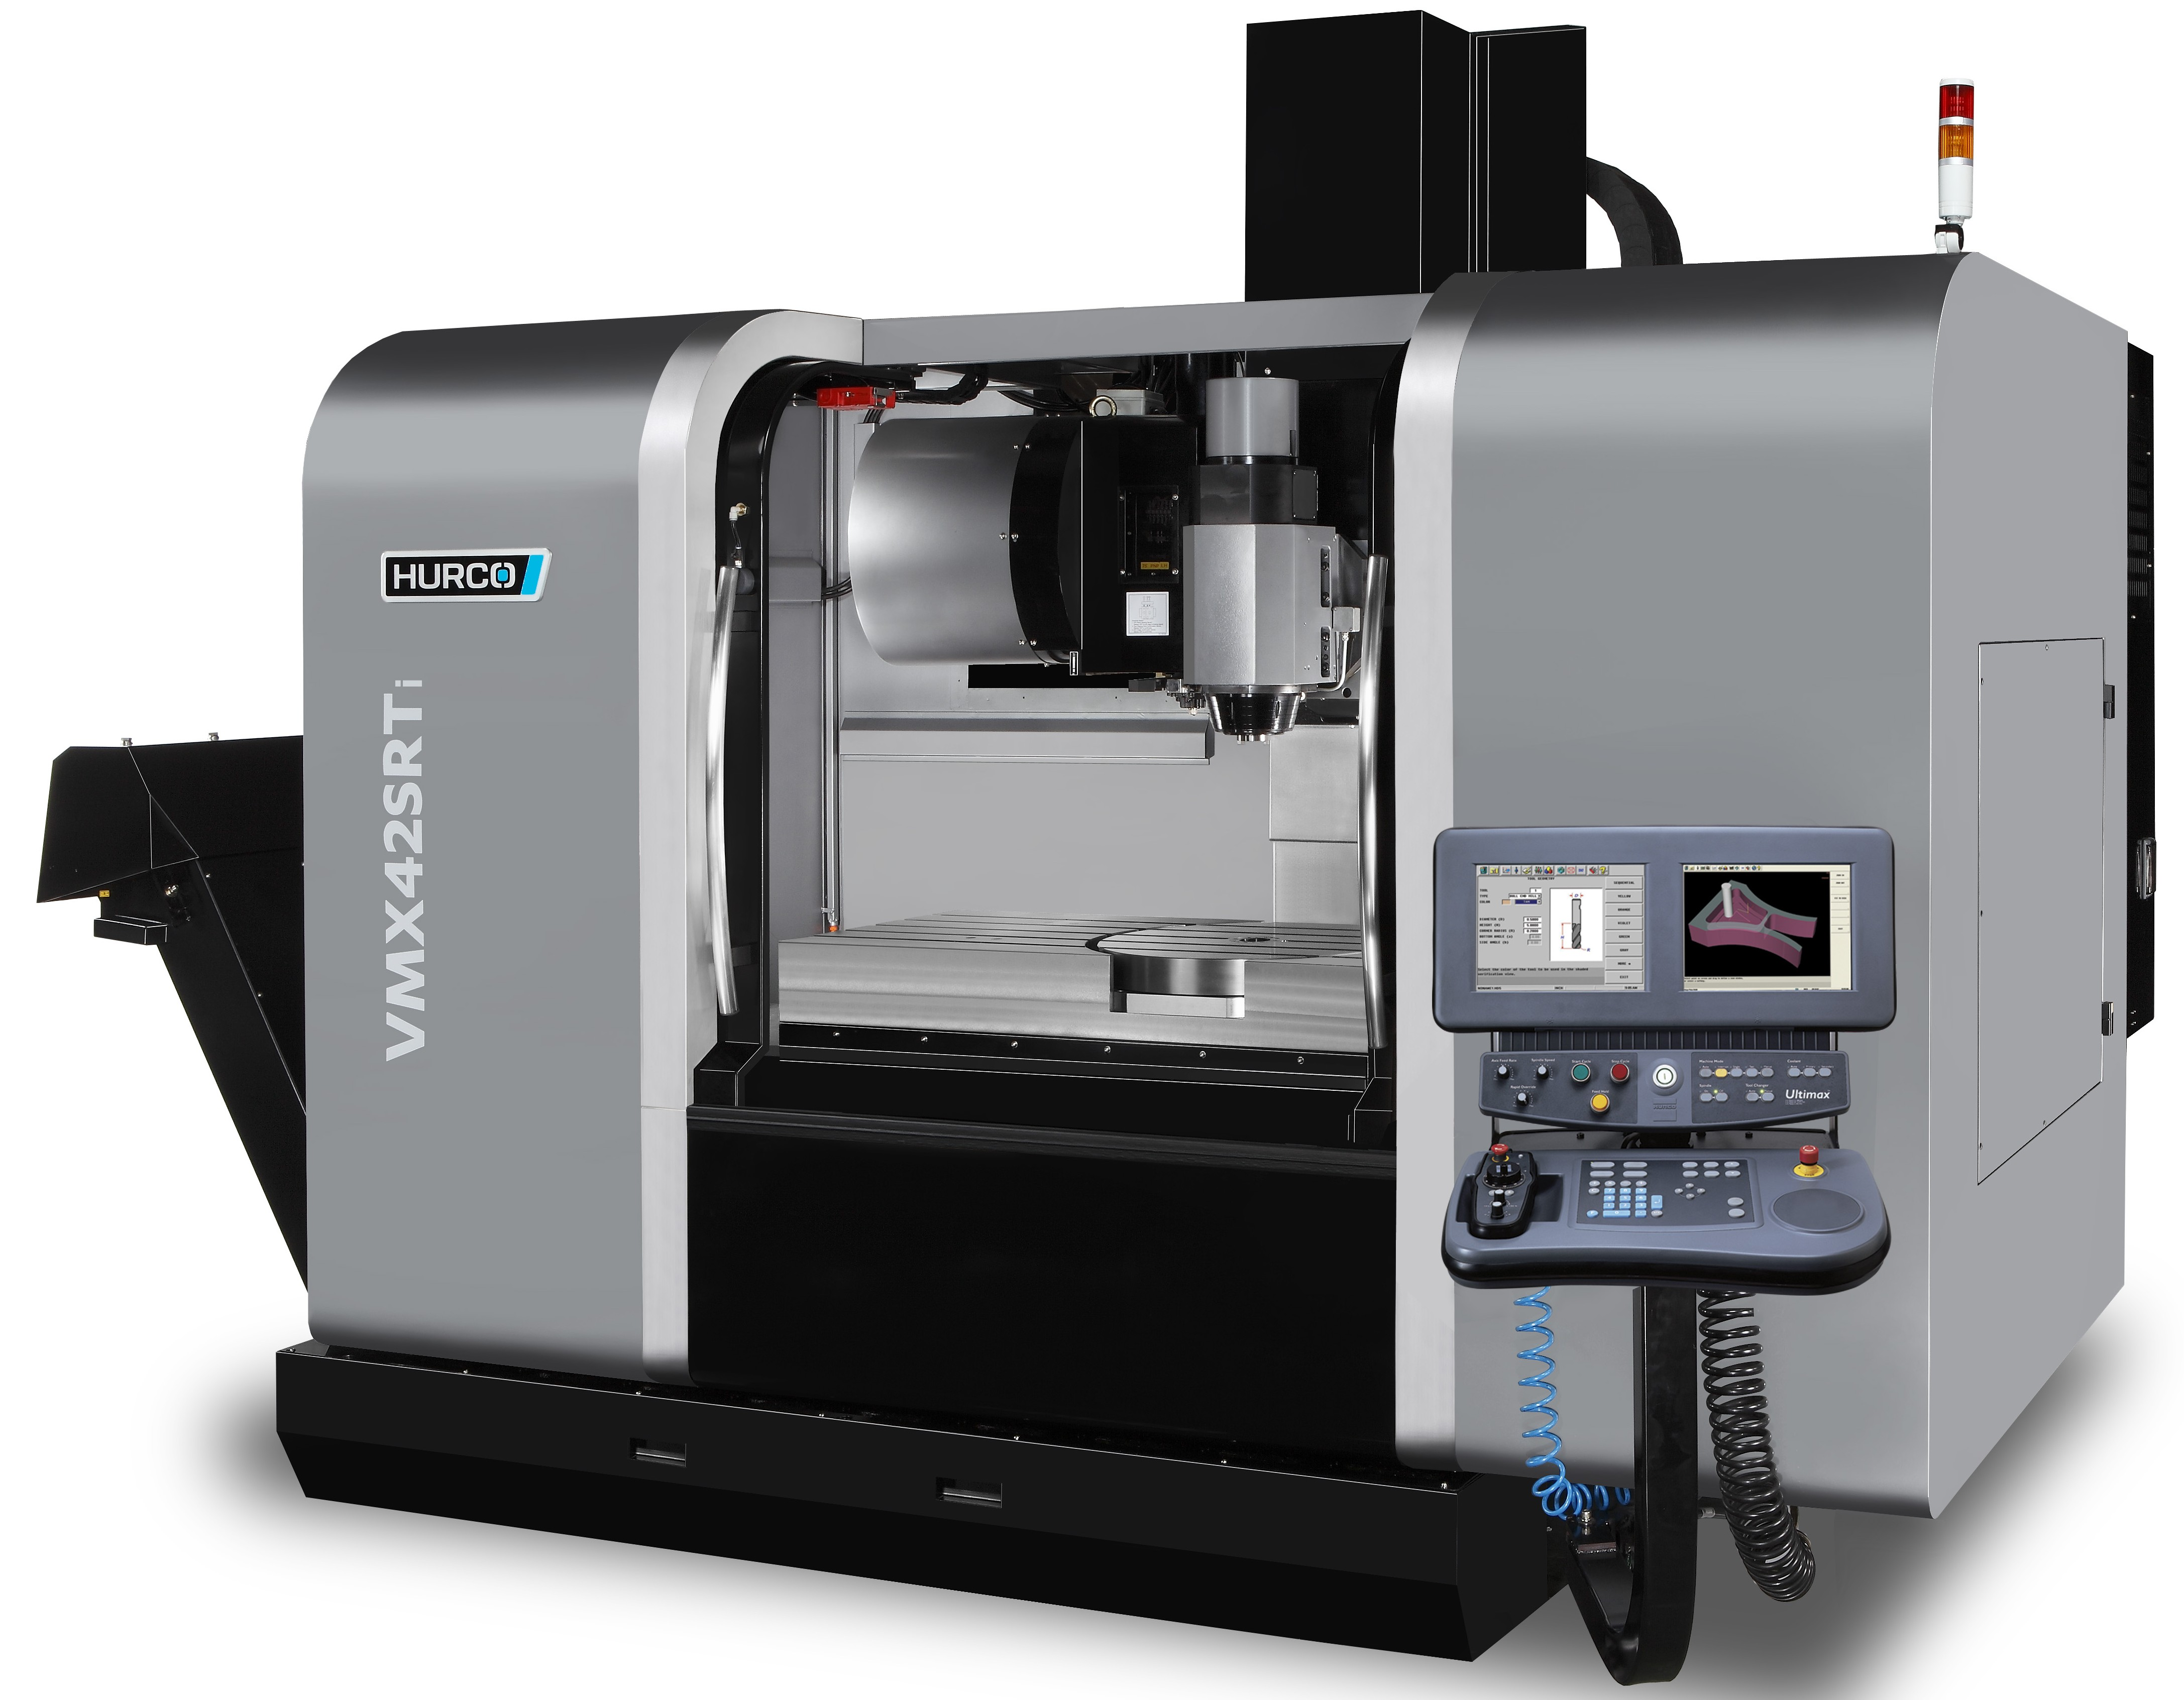 The 5-axis VMX42SRTi machining center has X/Y/Z travels of 42/24/24 in, a 12K integral spindle, a 40 station swing-arm automatic tool changer, X/Y/Z rapids of 1,378/1,378/1,181 ipm, and an integrated control that includes both conversational and NC programming modes.(Click on photo to enlarge it)